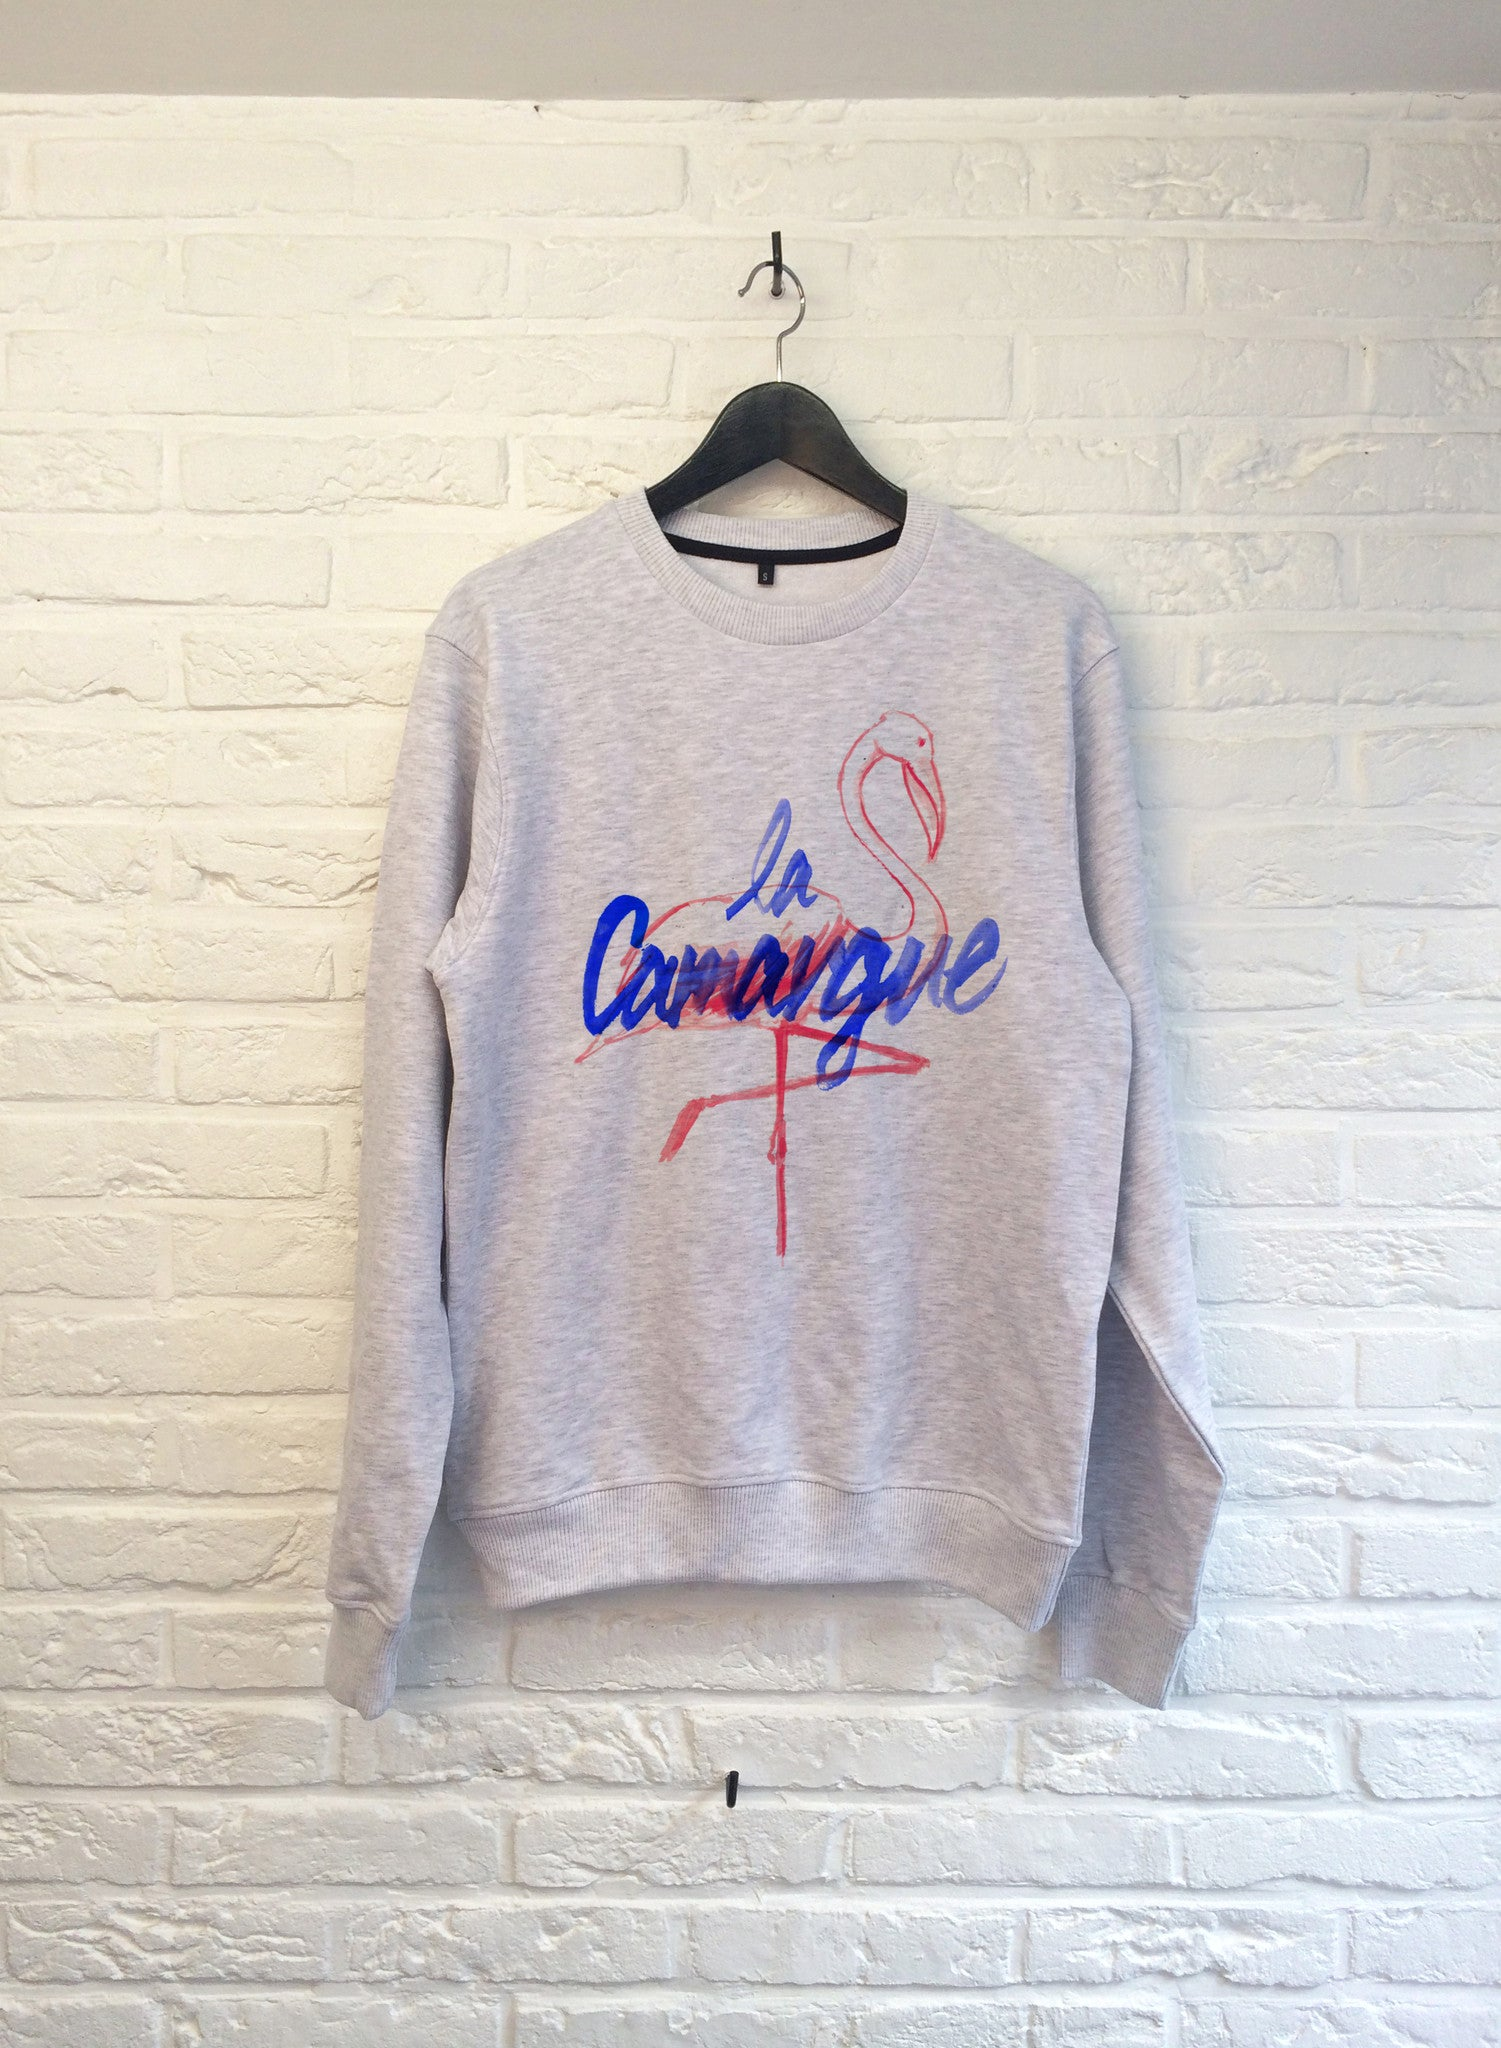 TH Gallery - La Camargue - Sweat-Sweat shirts-Atelier Amelot